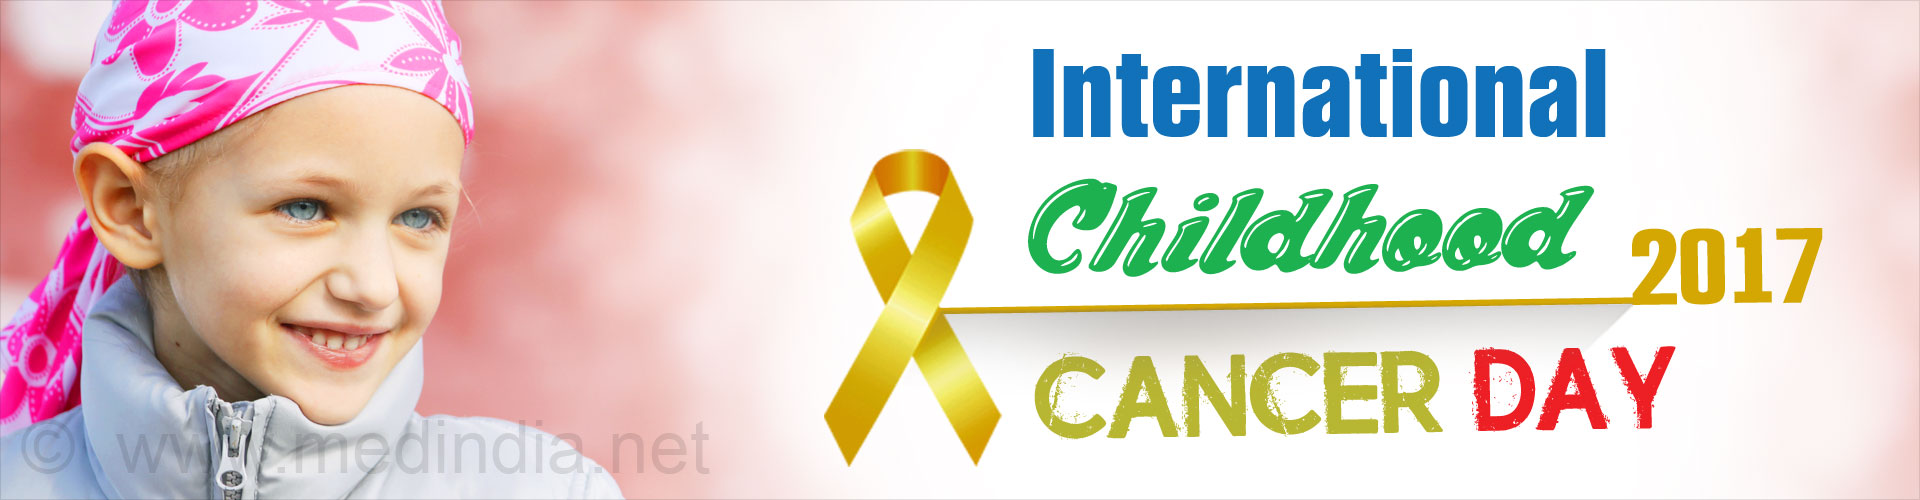 International Childhood Cancer Day 2017